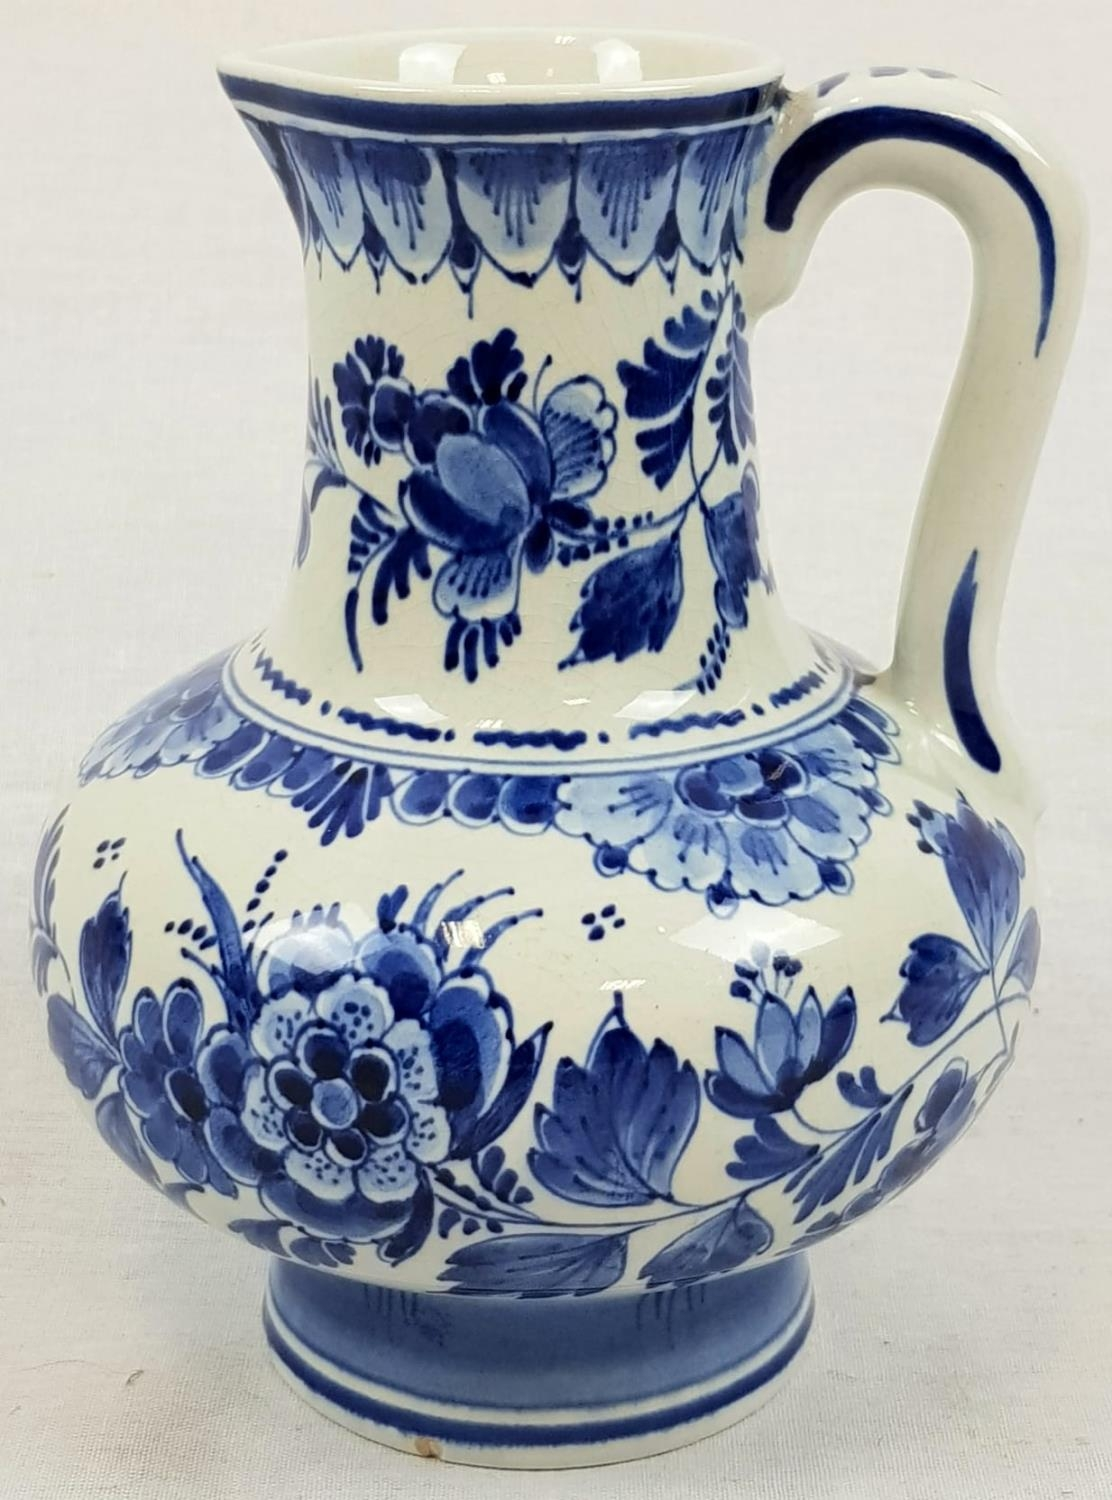 Vintage Delft Blue and White Water Jug. Signed on Base. Good Condition. 18cm tall.